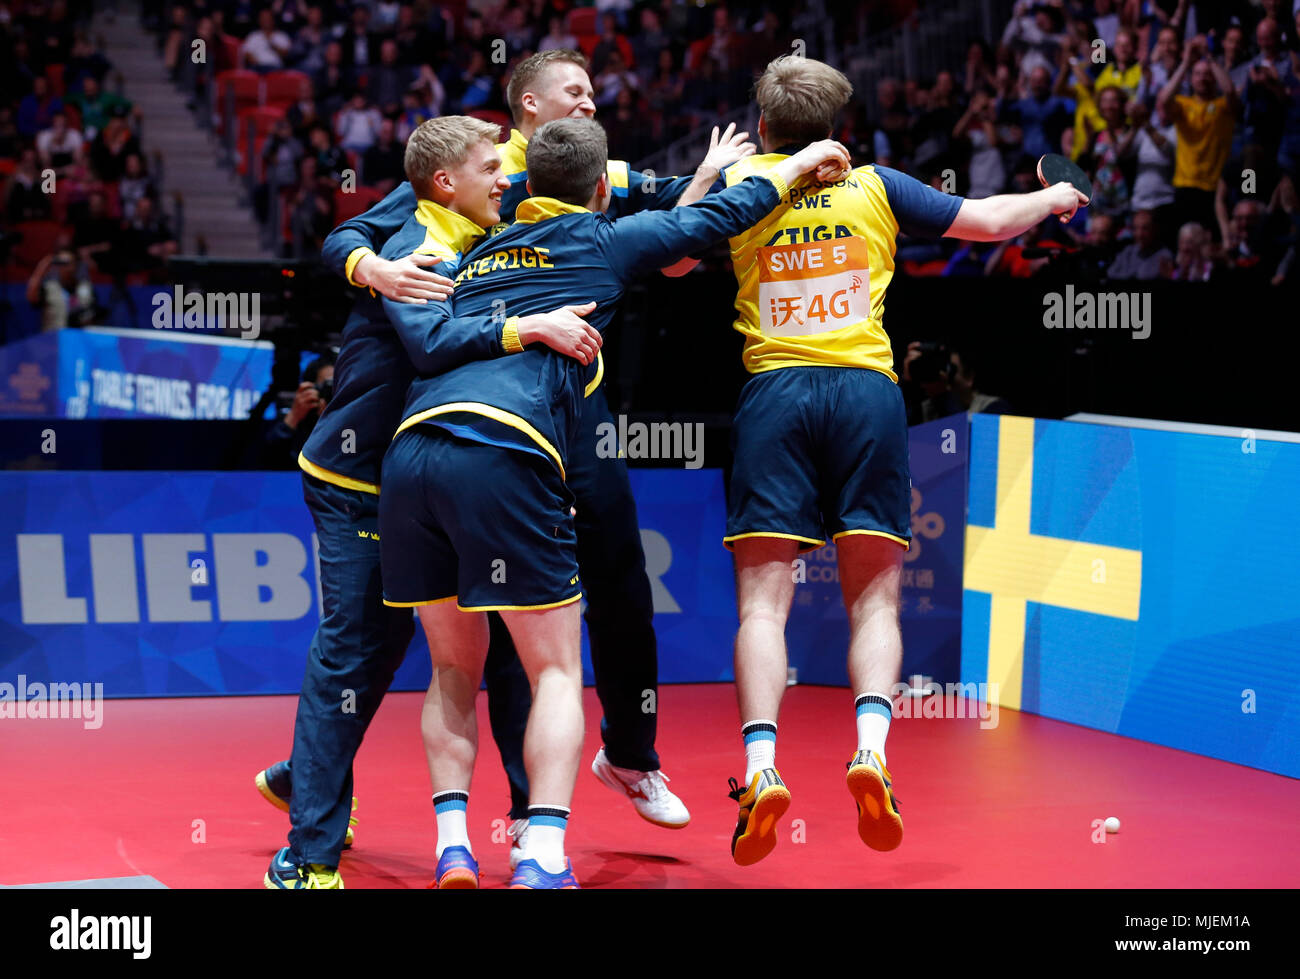 Halmstad, Sweden. 4th May, 2018. Swedish players celebrate after winning England during the Men's group quarterfinal match at the 2018 World Team Table Tennis Championships in Halmstad, Sweden, May 4, 2018. Credit: Ye Pingfan/Xinhua/Alamy Live News - Stock Image